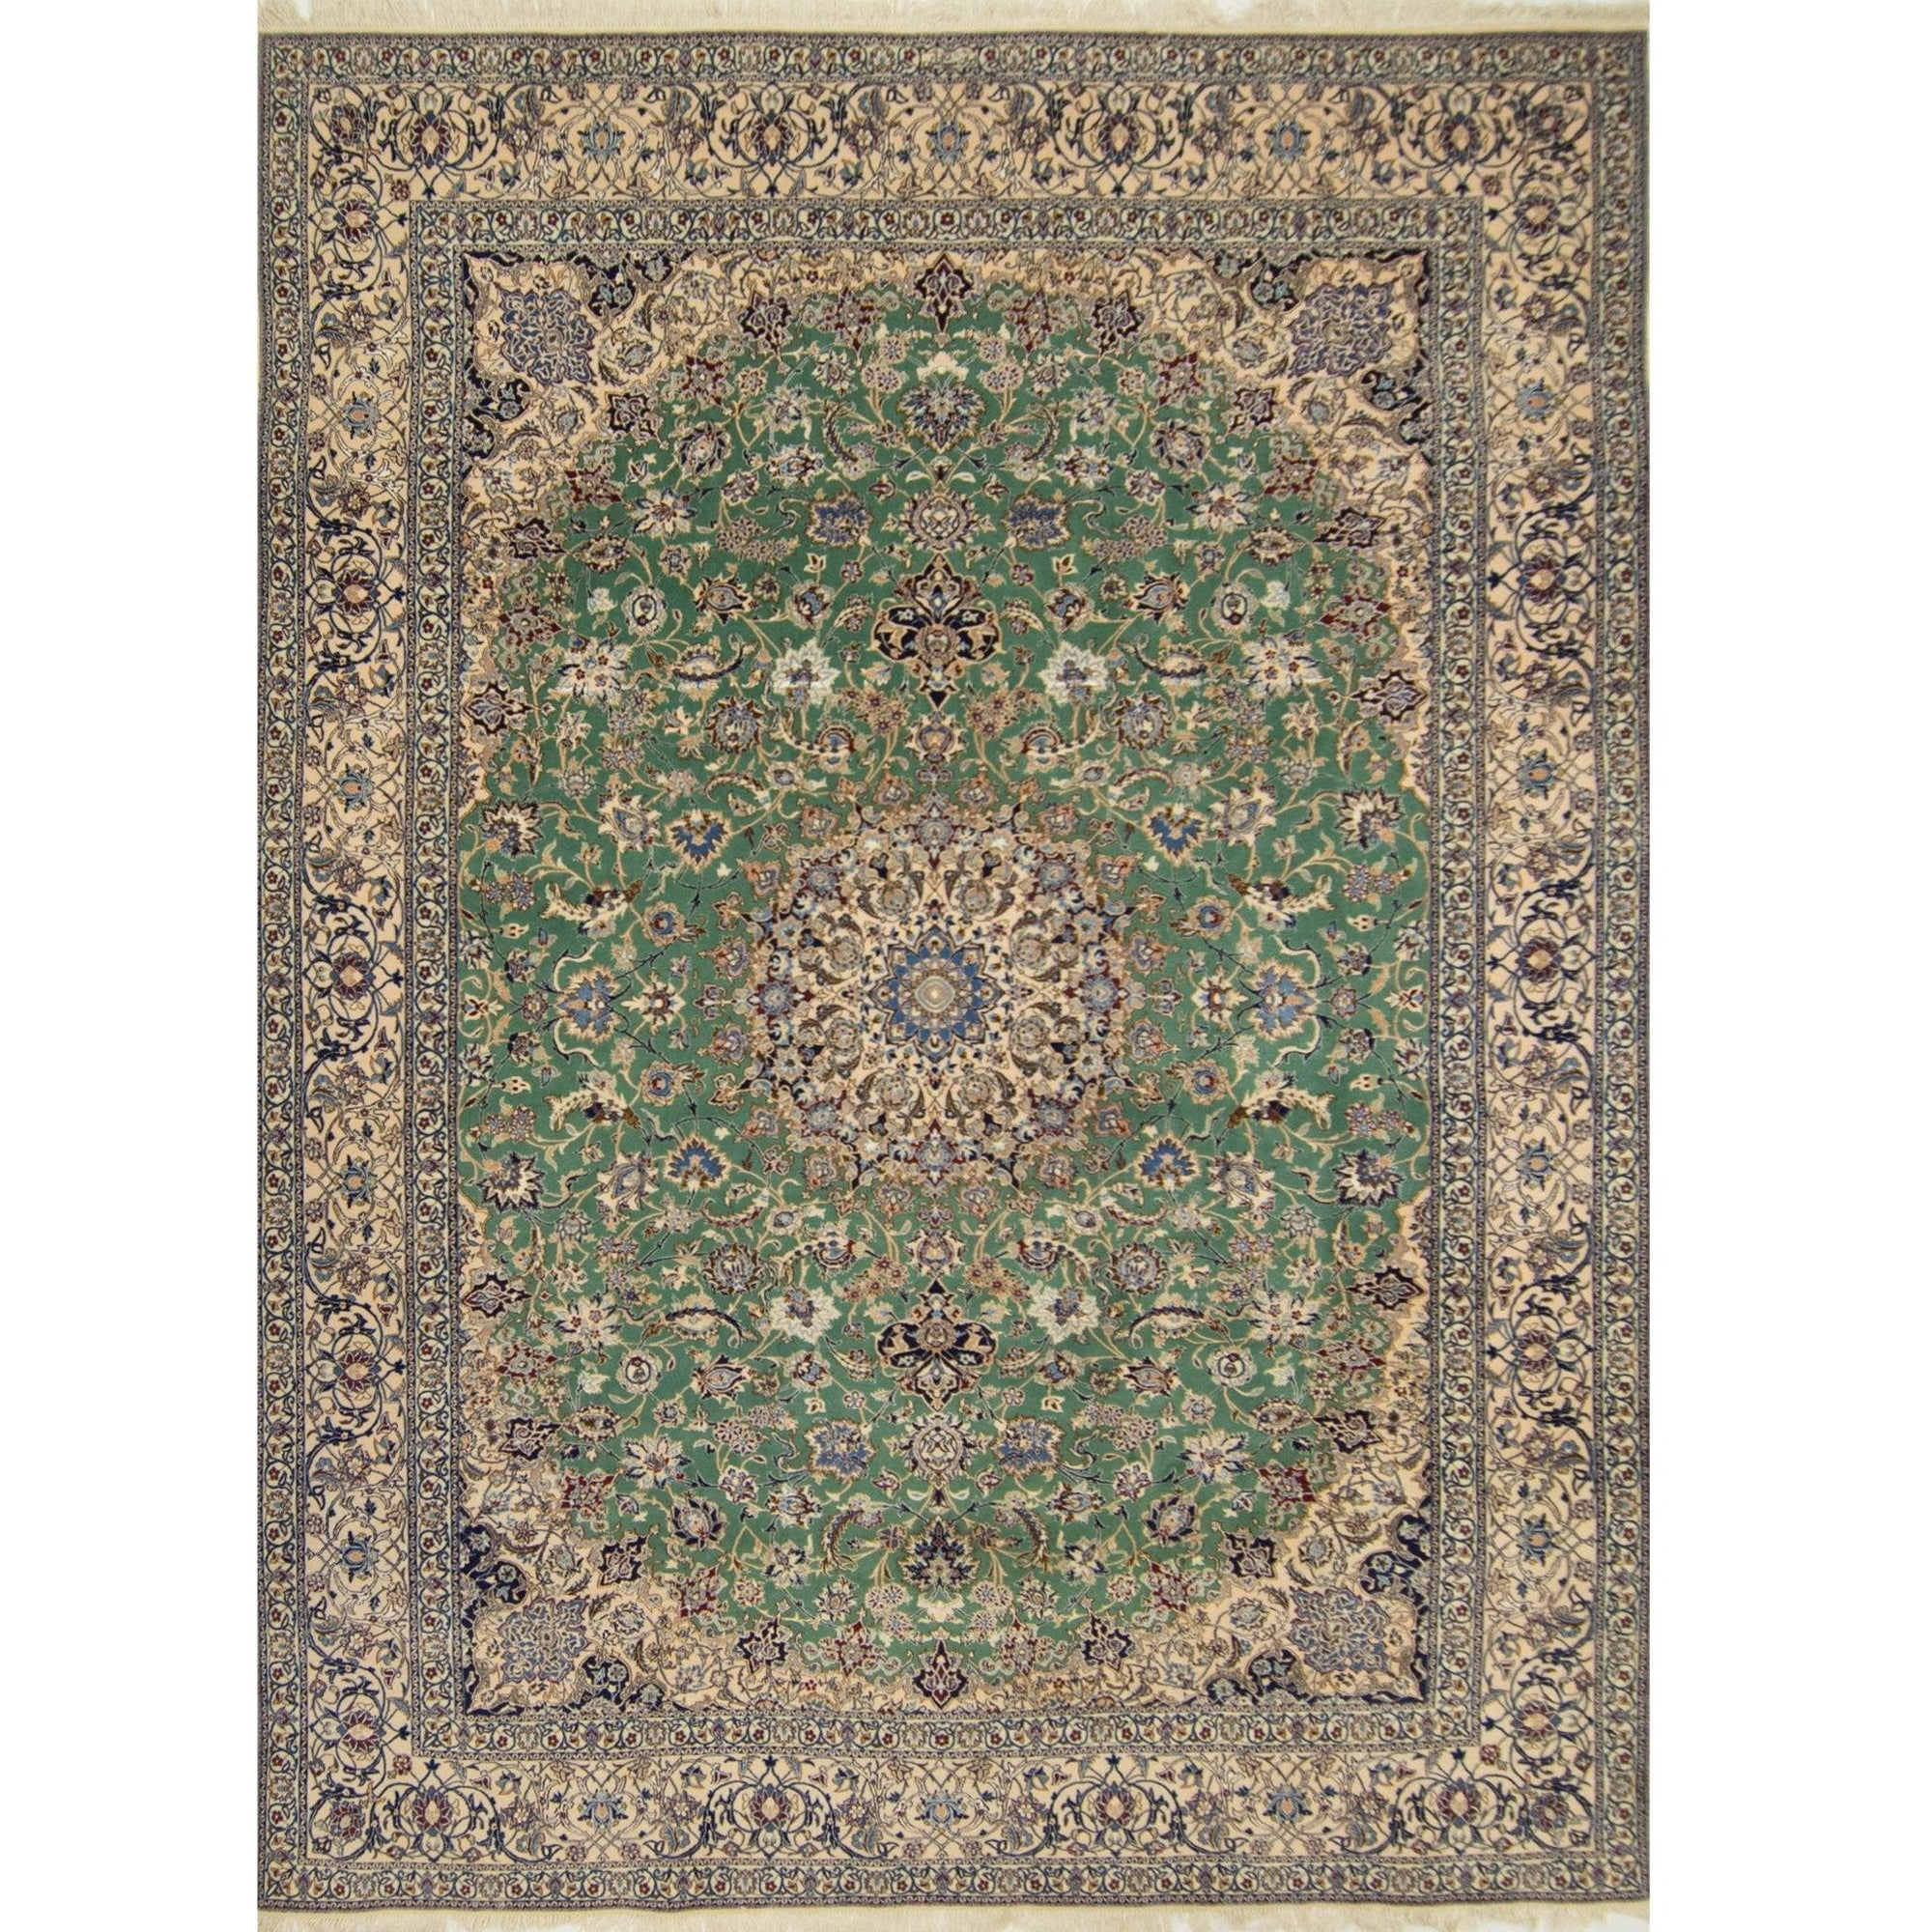 Genuine Super Fine Hand-knotted Persian Wool & Silk Nain Rug (SIGNED HABIBIAN ) 254cm x 357cm Persian-Rug | House-of-Haghi | NewMarket | Auckland | NZ | Handmade Persian Rugs | Hand Knotted Persian Rugs